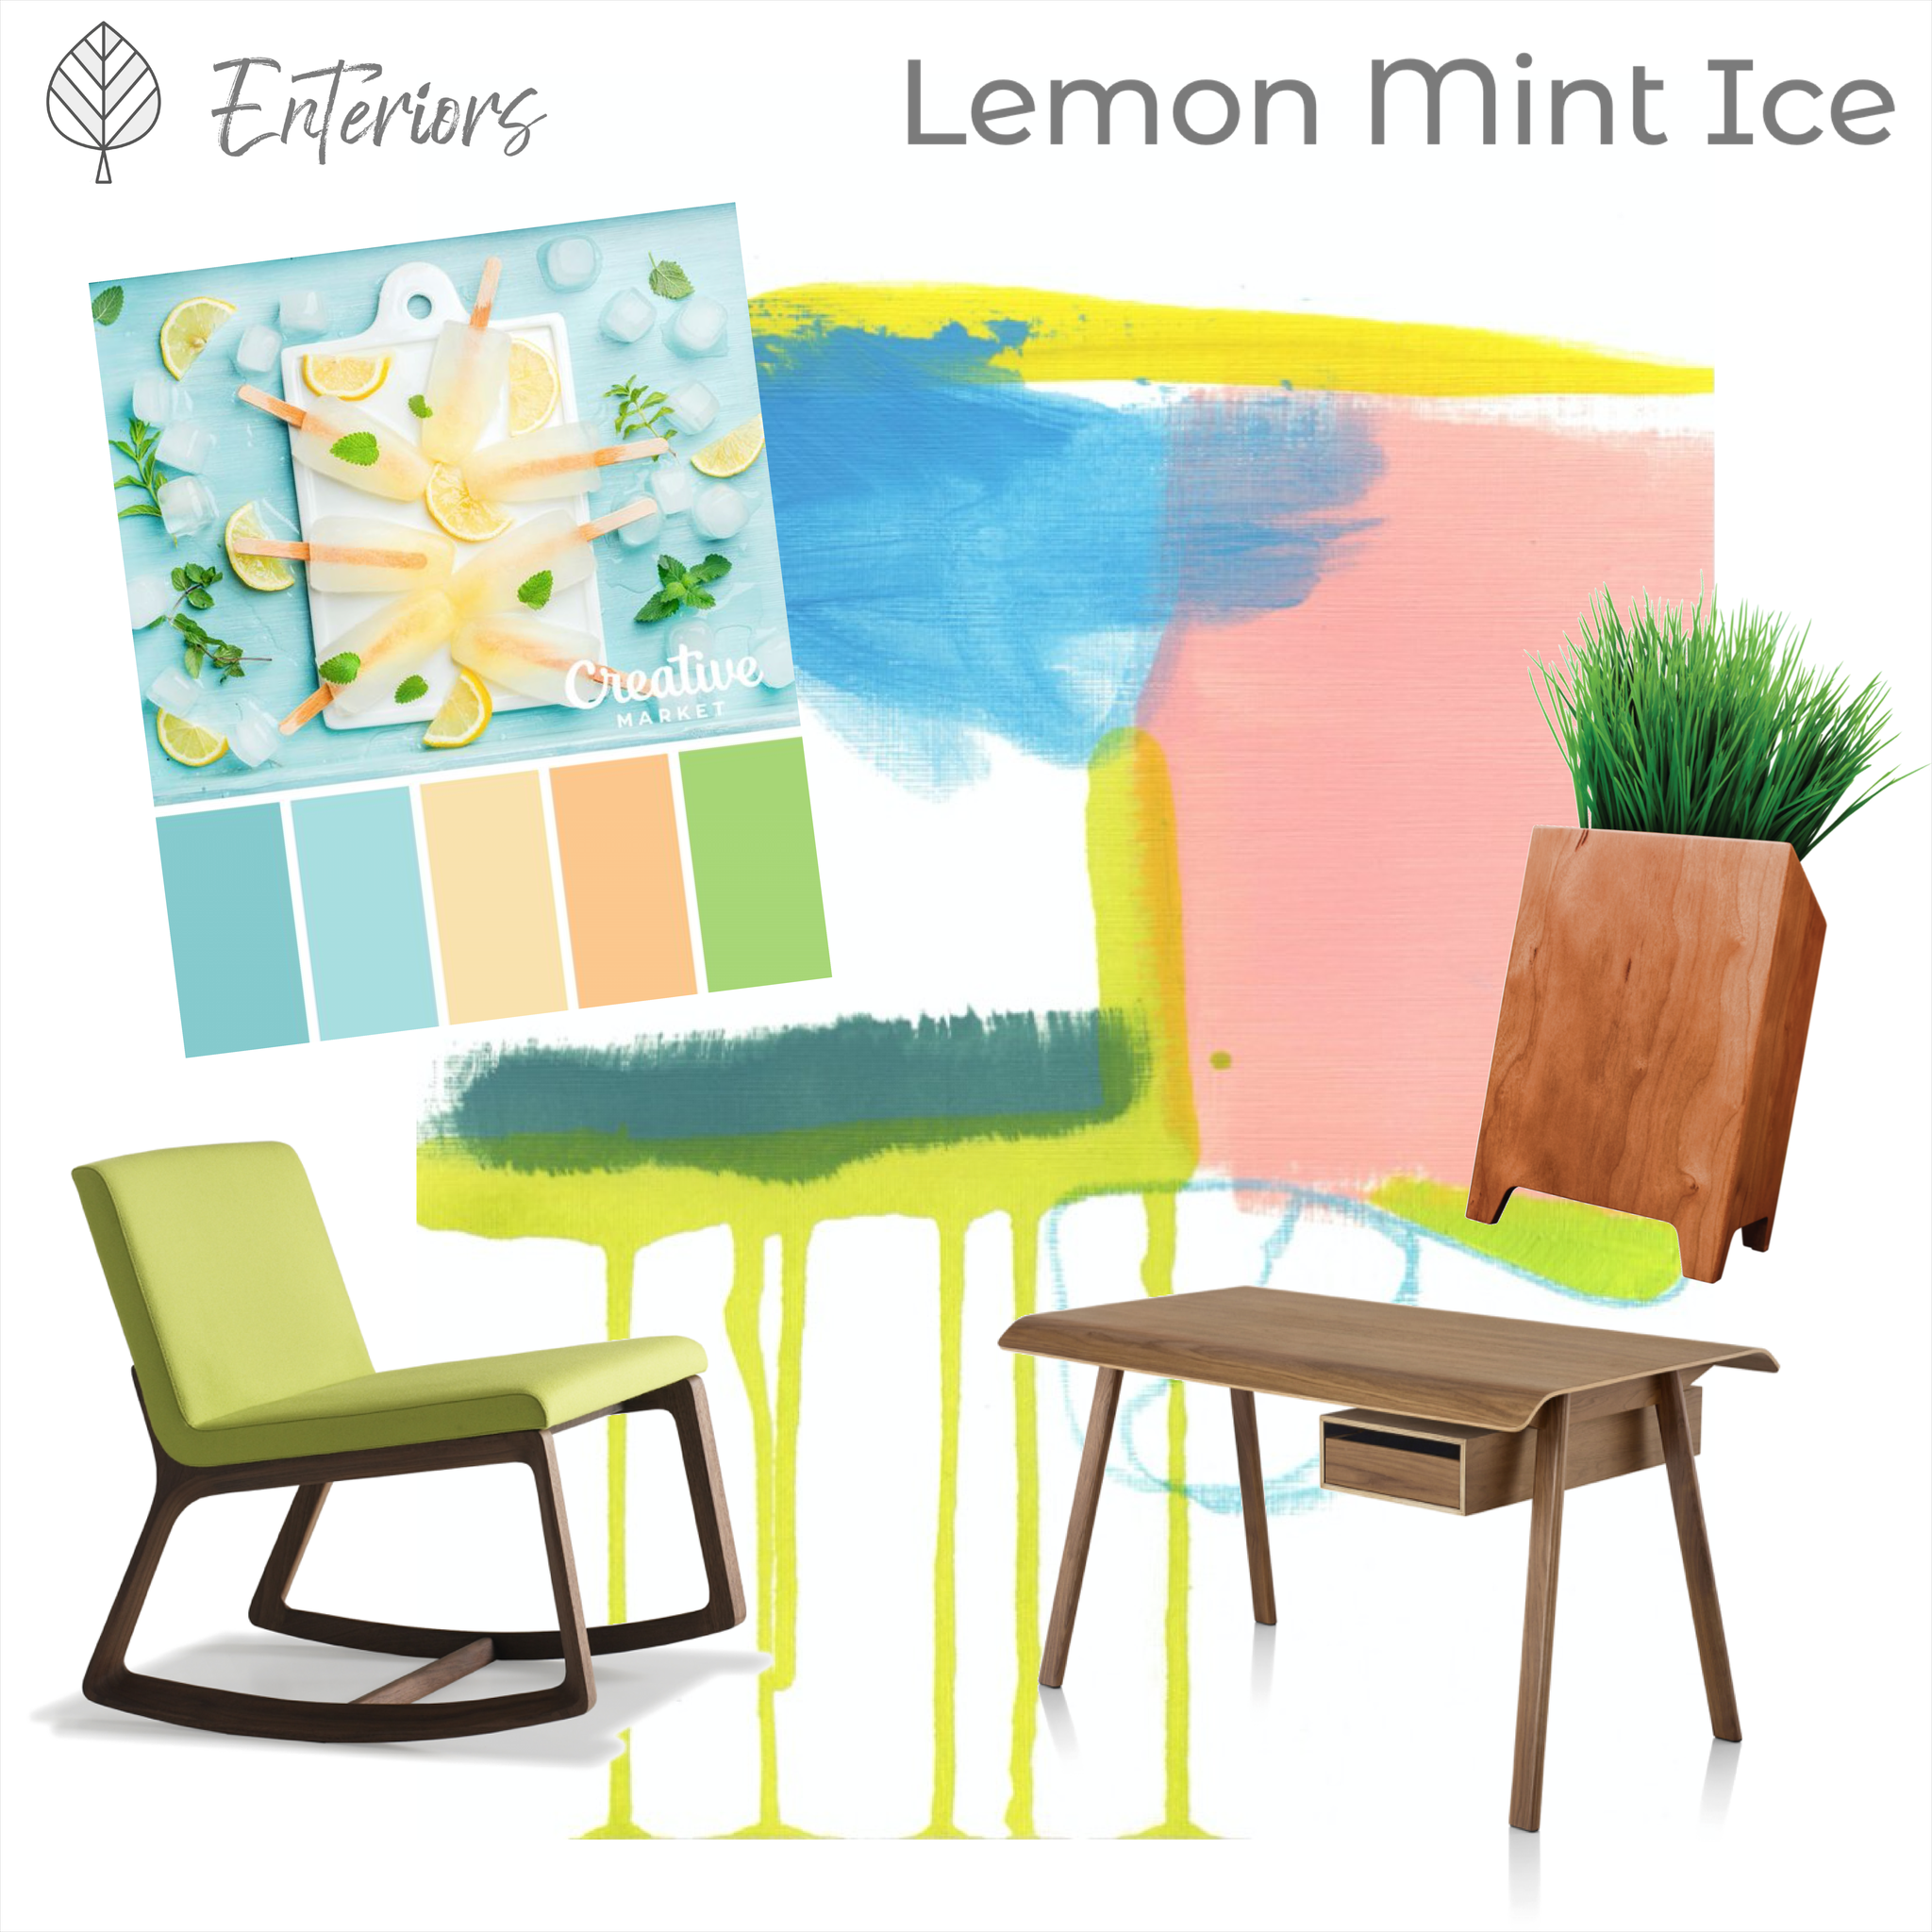 Style Board – Lemon Mint Ice